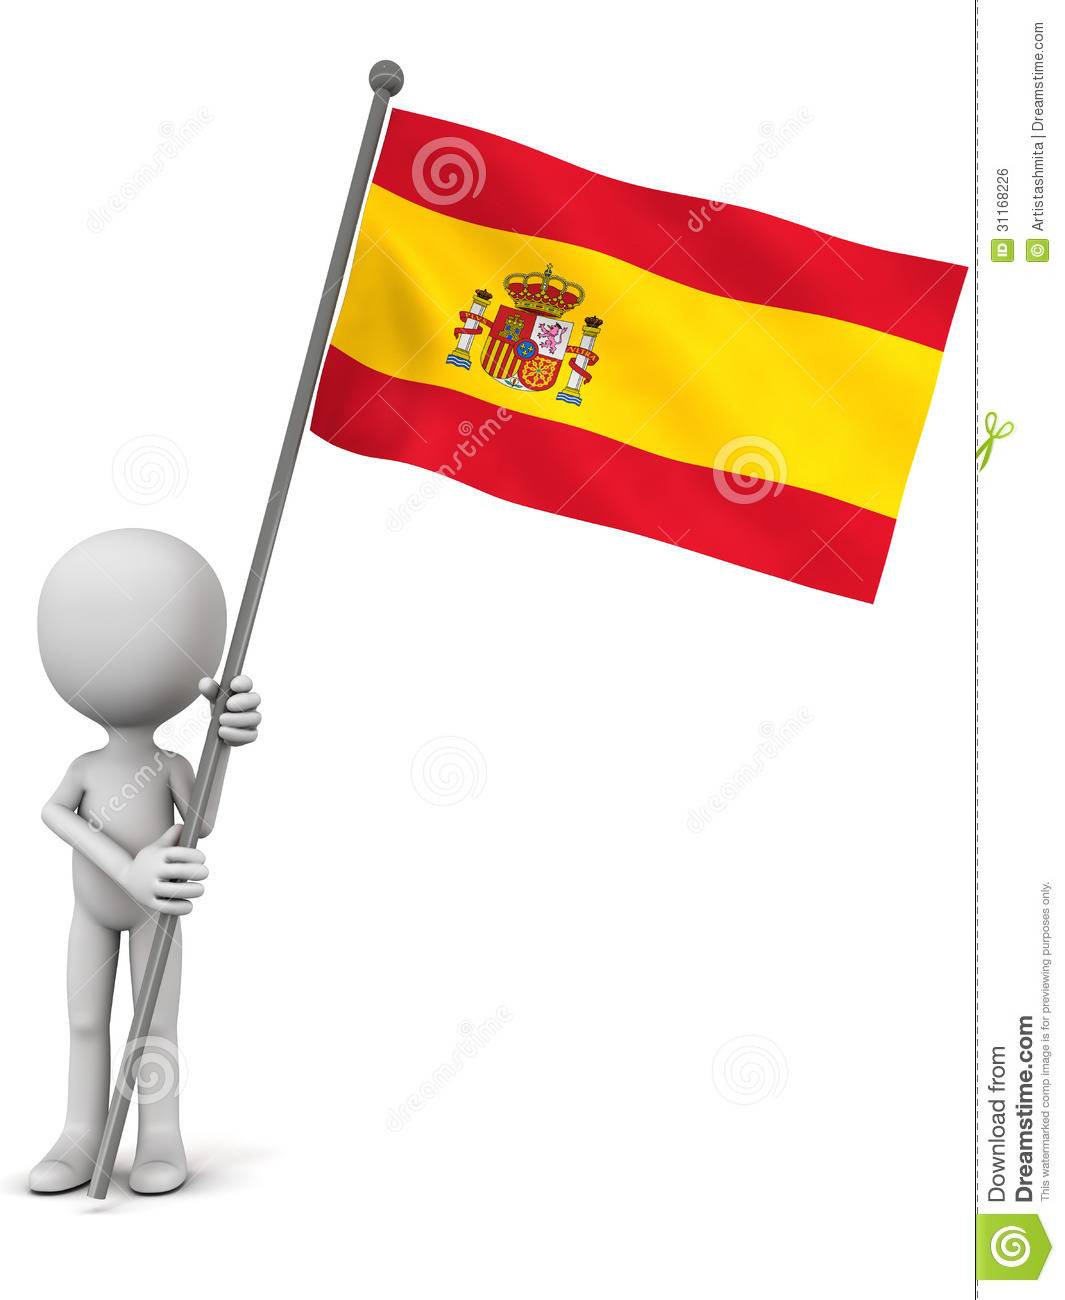 Spain Flag Royalty Free Stock Image.